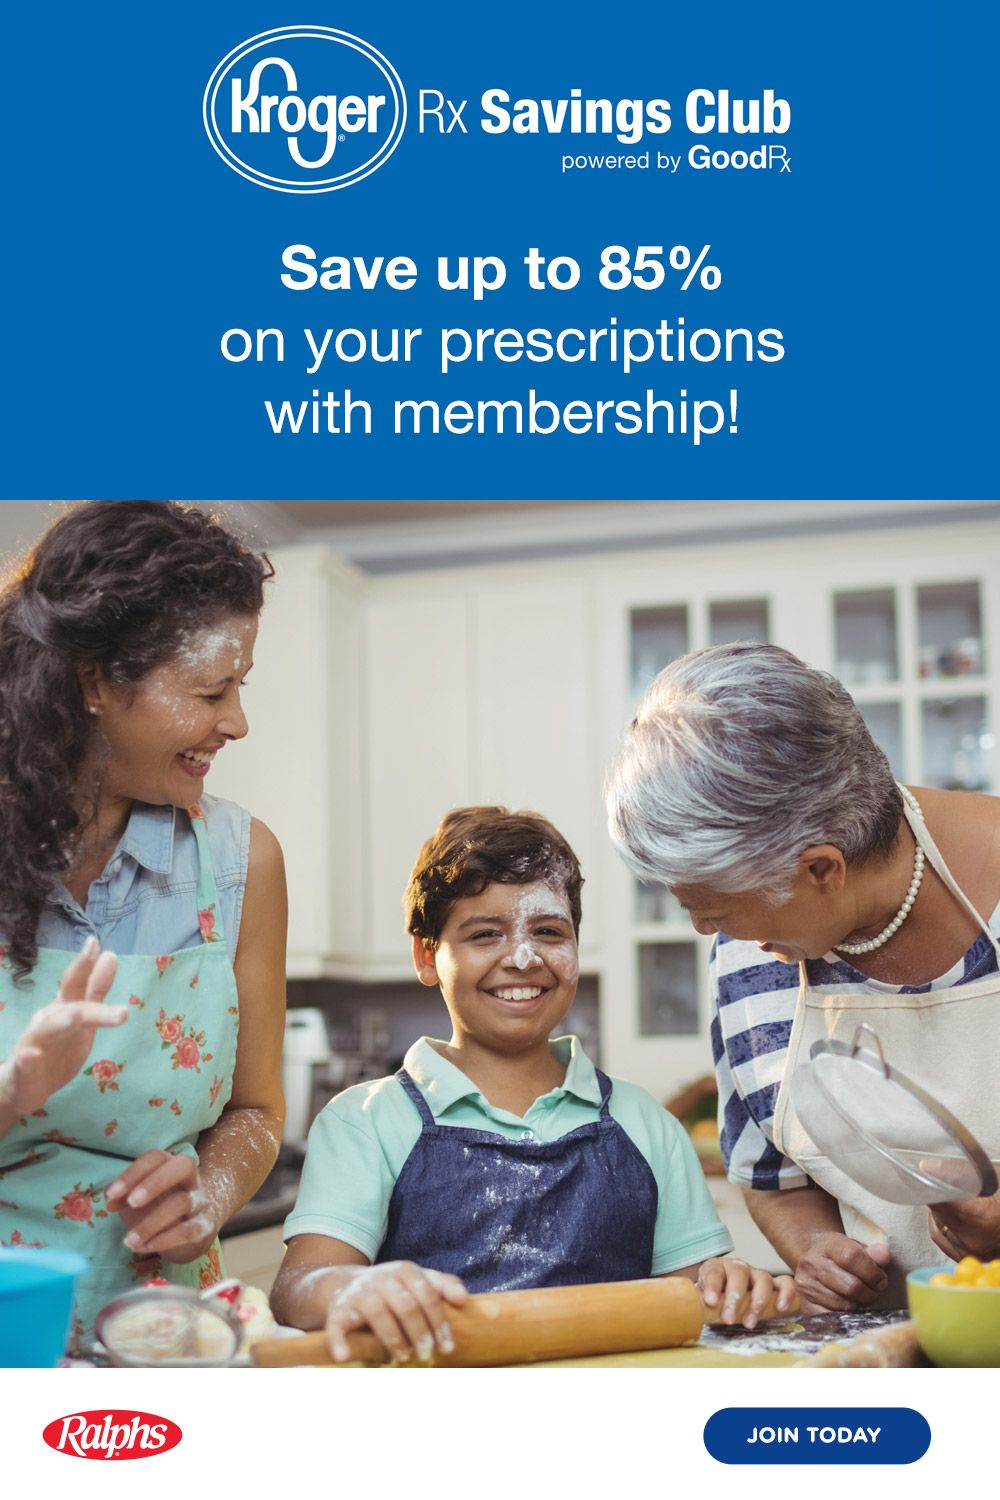 The Kroger Rx Savings Club Powered By Goodrx Can Provide Discounts On Thousands Of Prescriptions Members Also Have Access To 100 Commo Tshirt Business Club